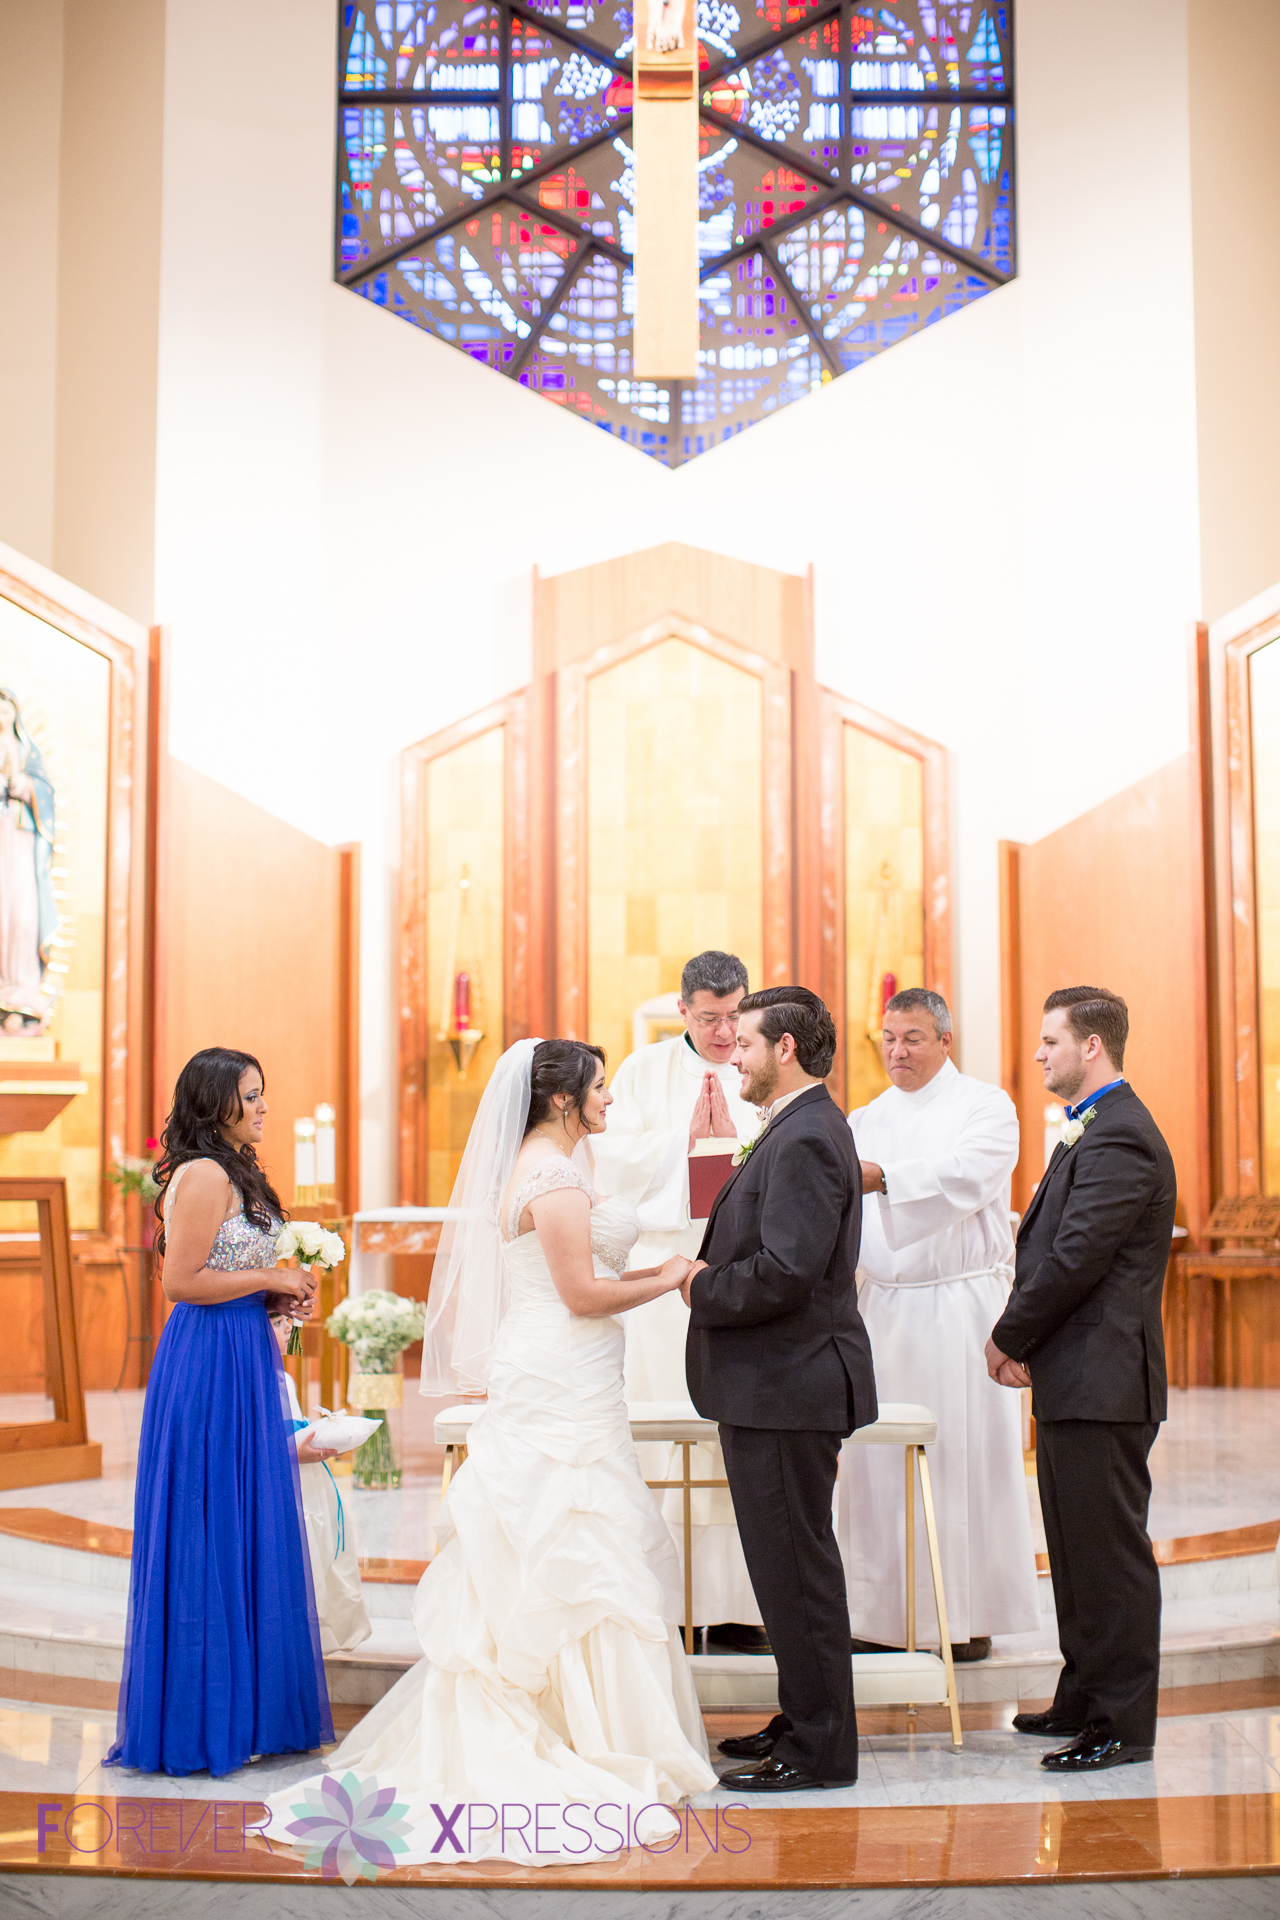 Forever_Xpressions_Wedding_Photography_Monteverde_Bella_Collina-0362